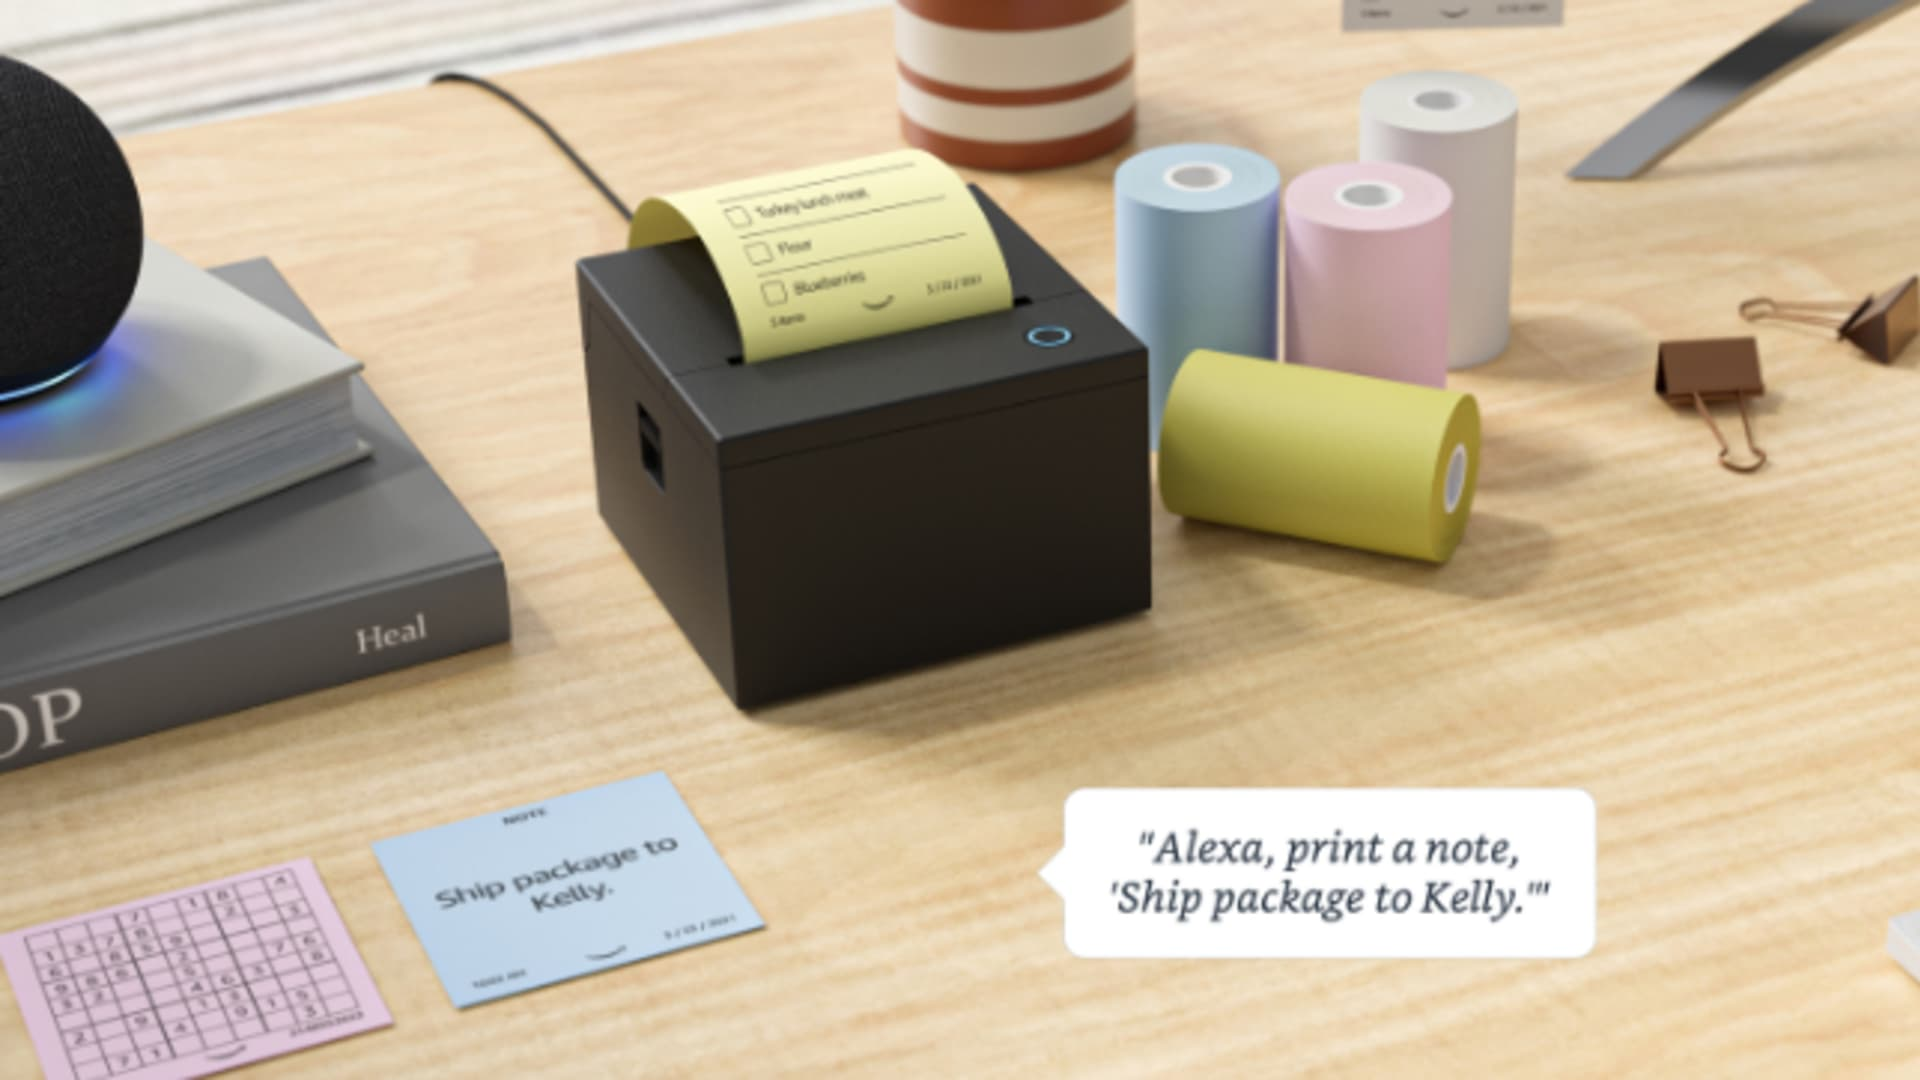 Amazon's smart sticky note printer